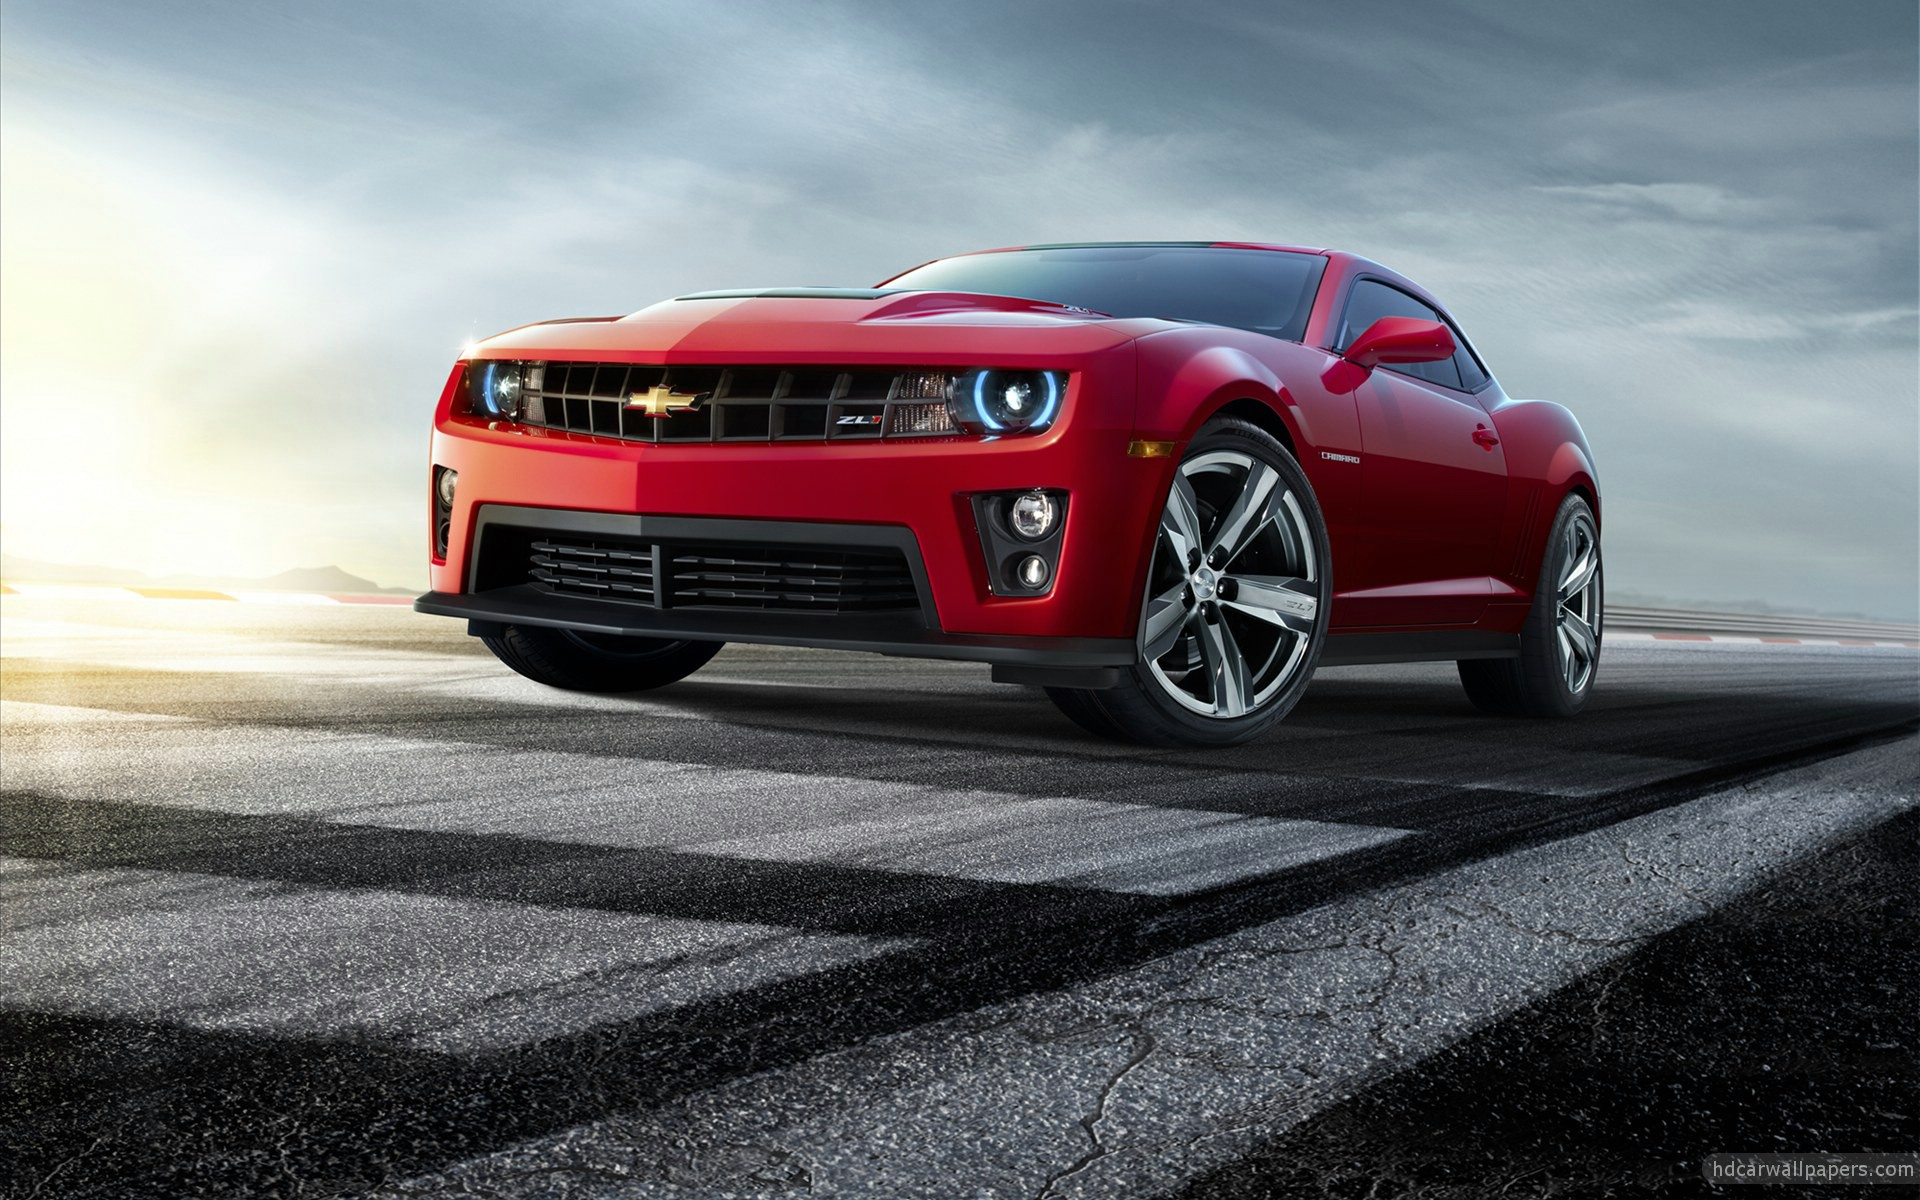 2012 Chevrolet Camaro ZL1 3 Wallpaper HD Car Wallpapers 1920x1200